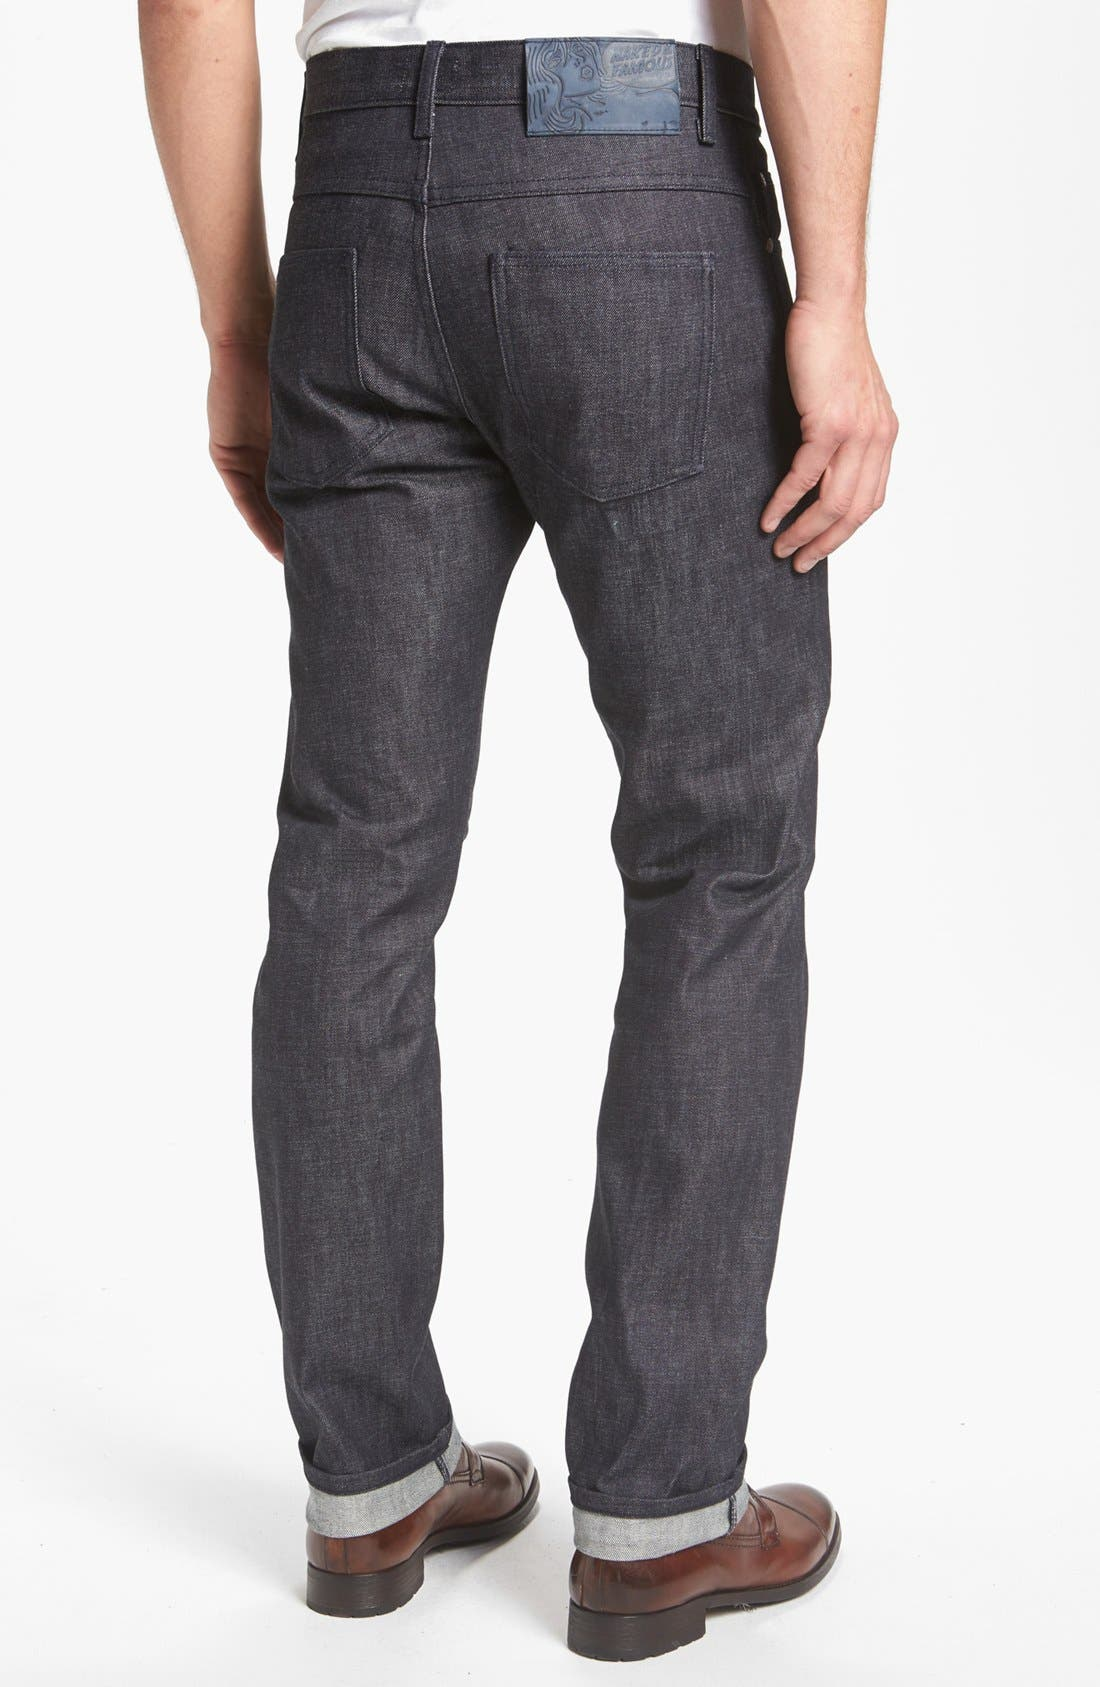 Alternate Image 1 Selected - Naked & Famous Denim 'Slim Guy' Straight Leg Raw Jeans (Natural Denim) (Online Only)